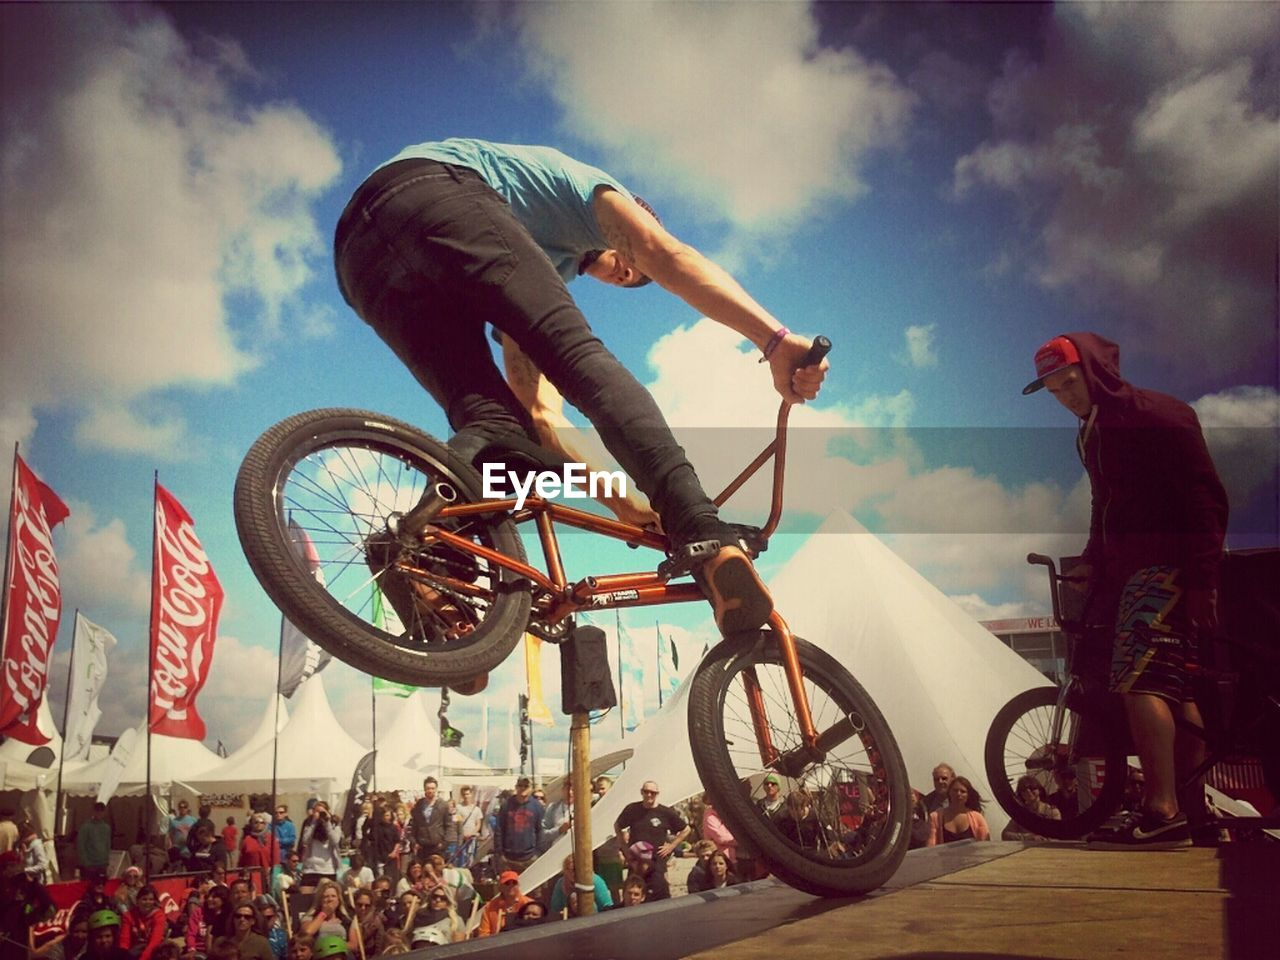 bicycle, transportation, real people, mode of transport, sky, men, cycling, leisure activity, riding, fun, day, outdoors, bmx cycling, land vehicle, lifestyles, sport, extreme sports, motion, low angle view, adventure, helmet, women, stunt, crowd, biker, people